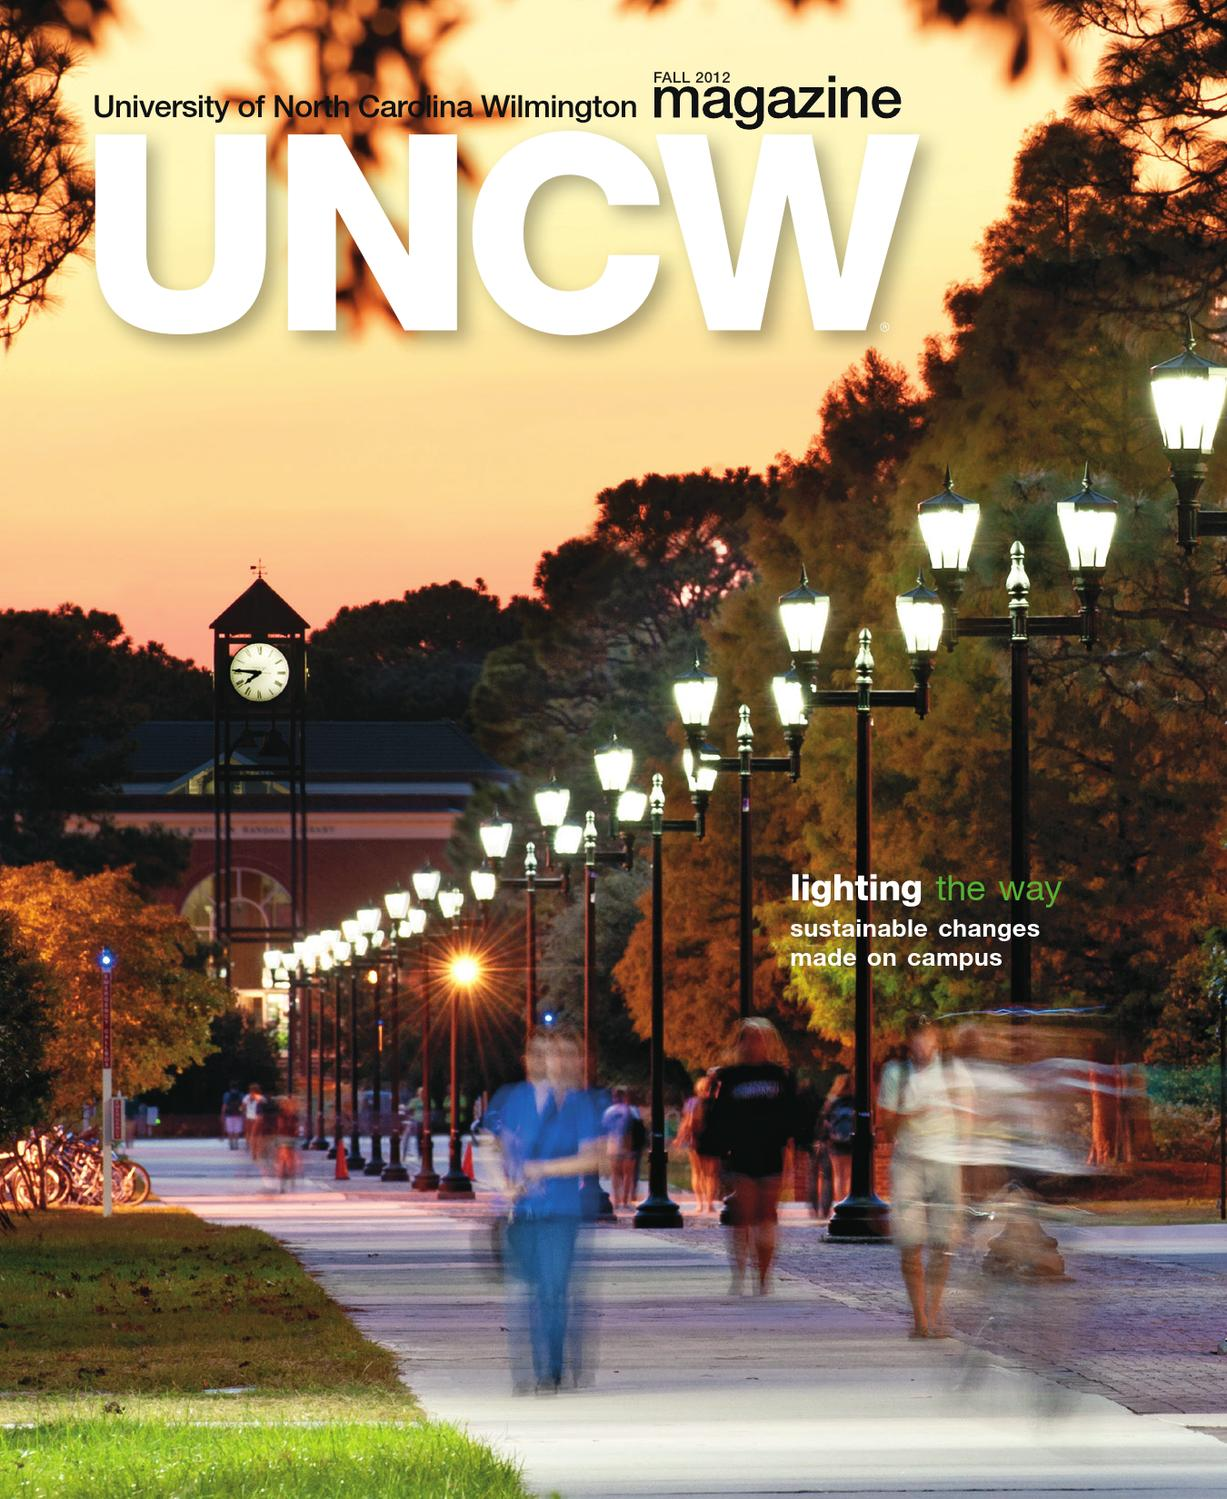 unc wilmington help admissions essay writing resources unc wilmington admissions essay help